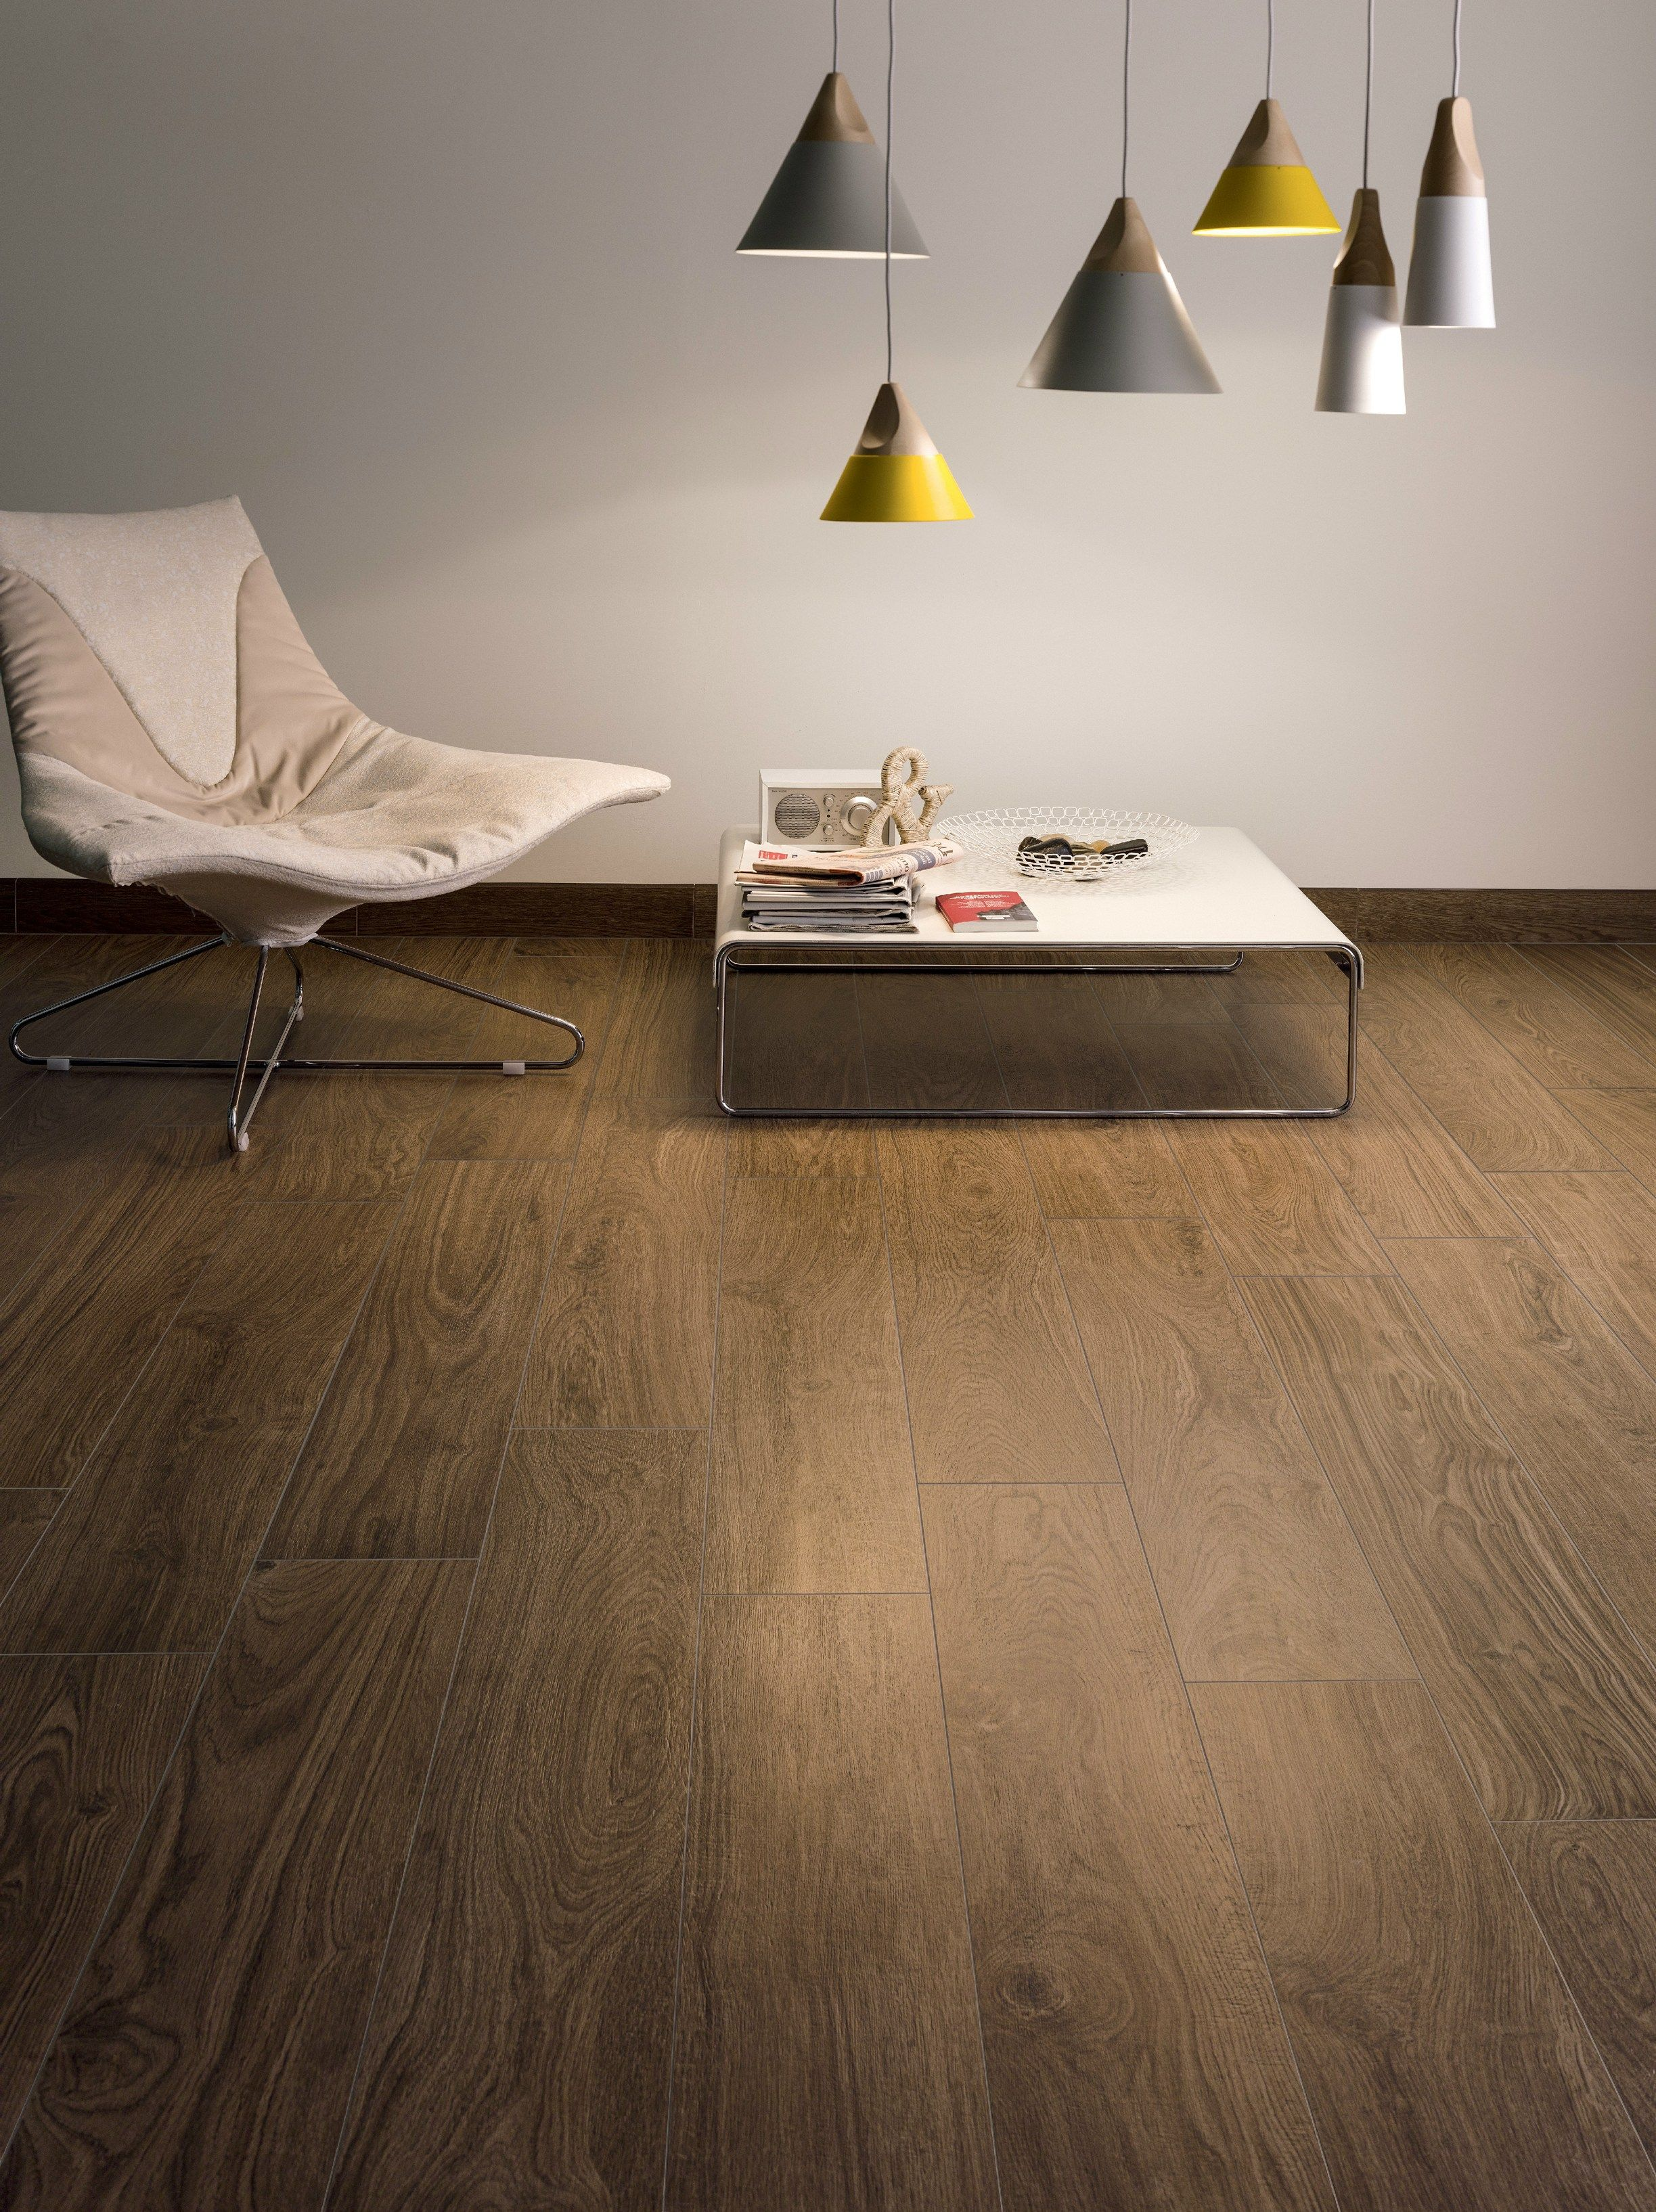 Ecological flooring with wood effect BIO TIMBER MICROBAN by @leaceramiche